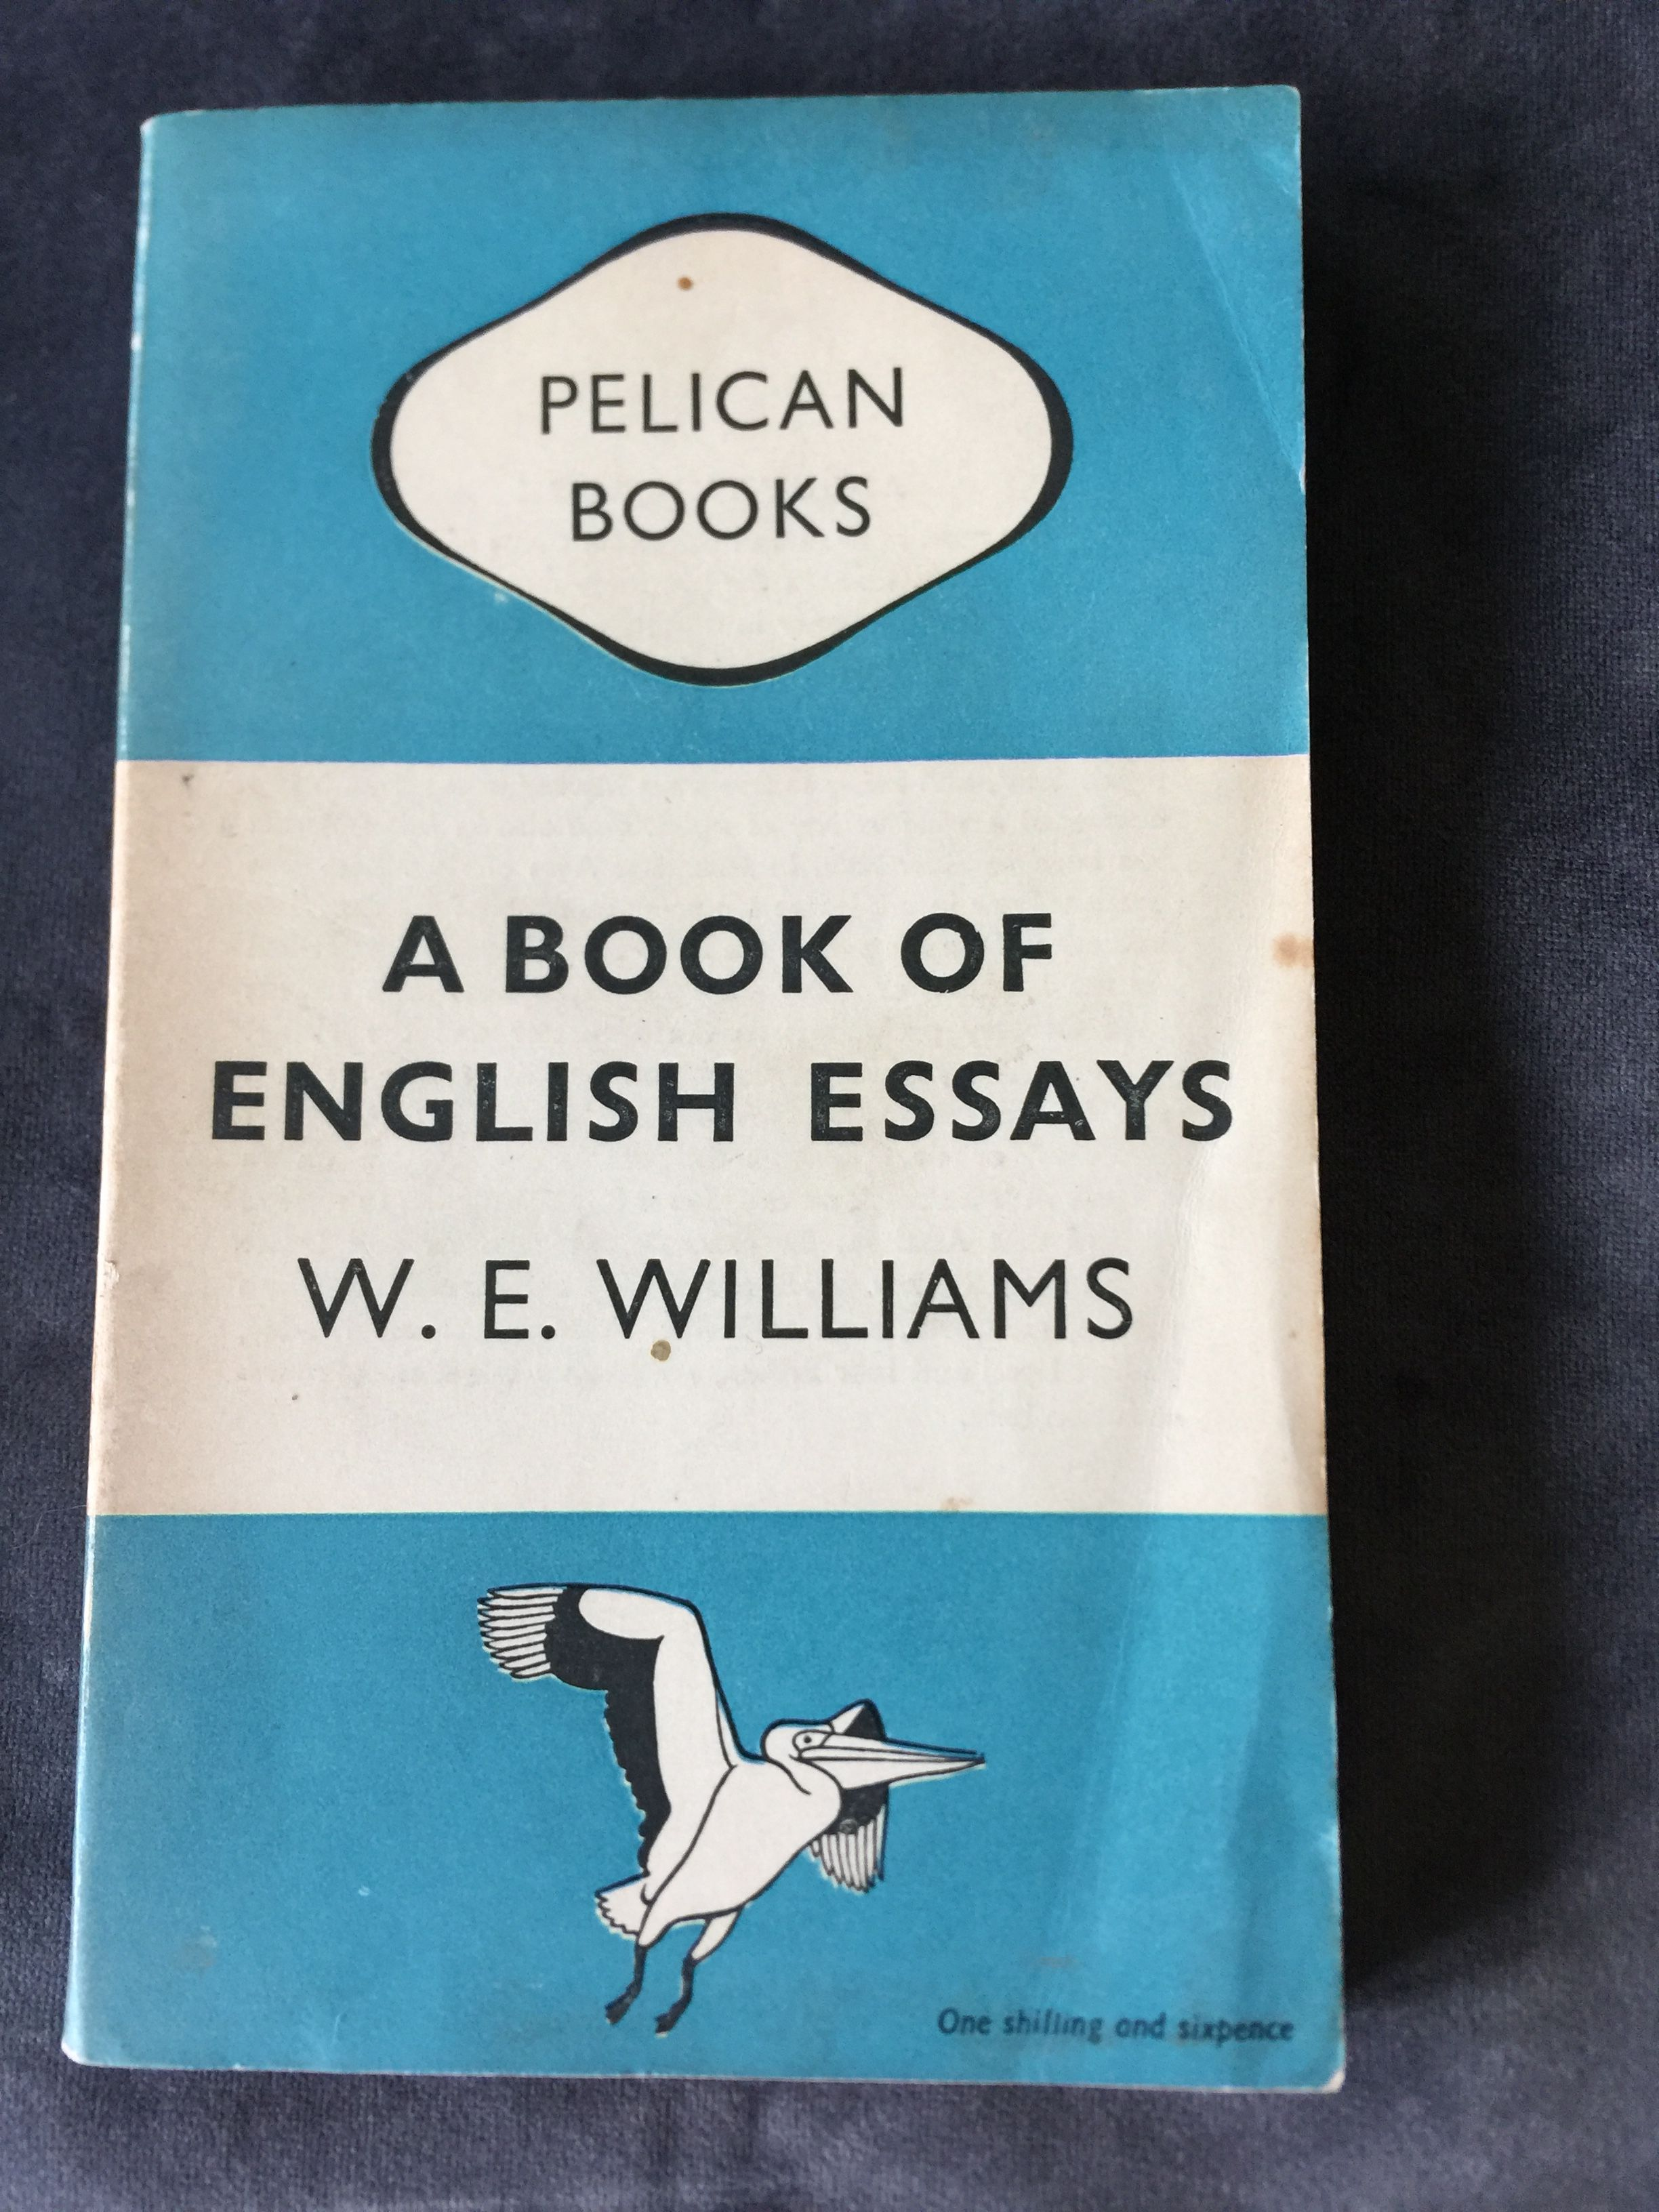 Modest Proposal Essay  Fahrenheit 451 Essay Thesis also Research Paper Essays W E Williams A Book Of English Essays Pelican Books  A  Library Essay In English